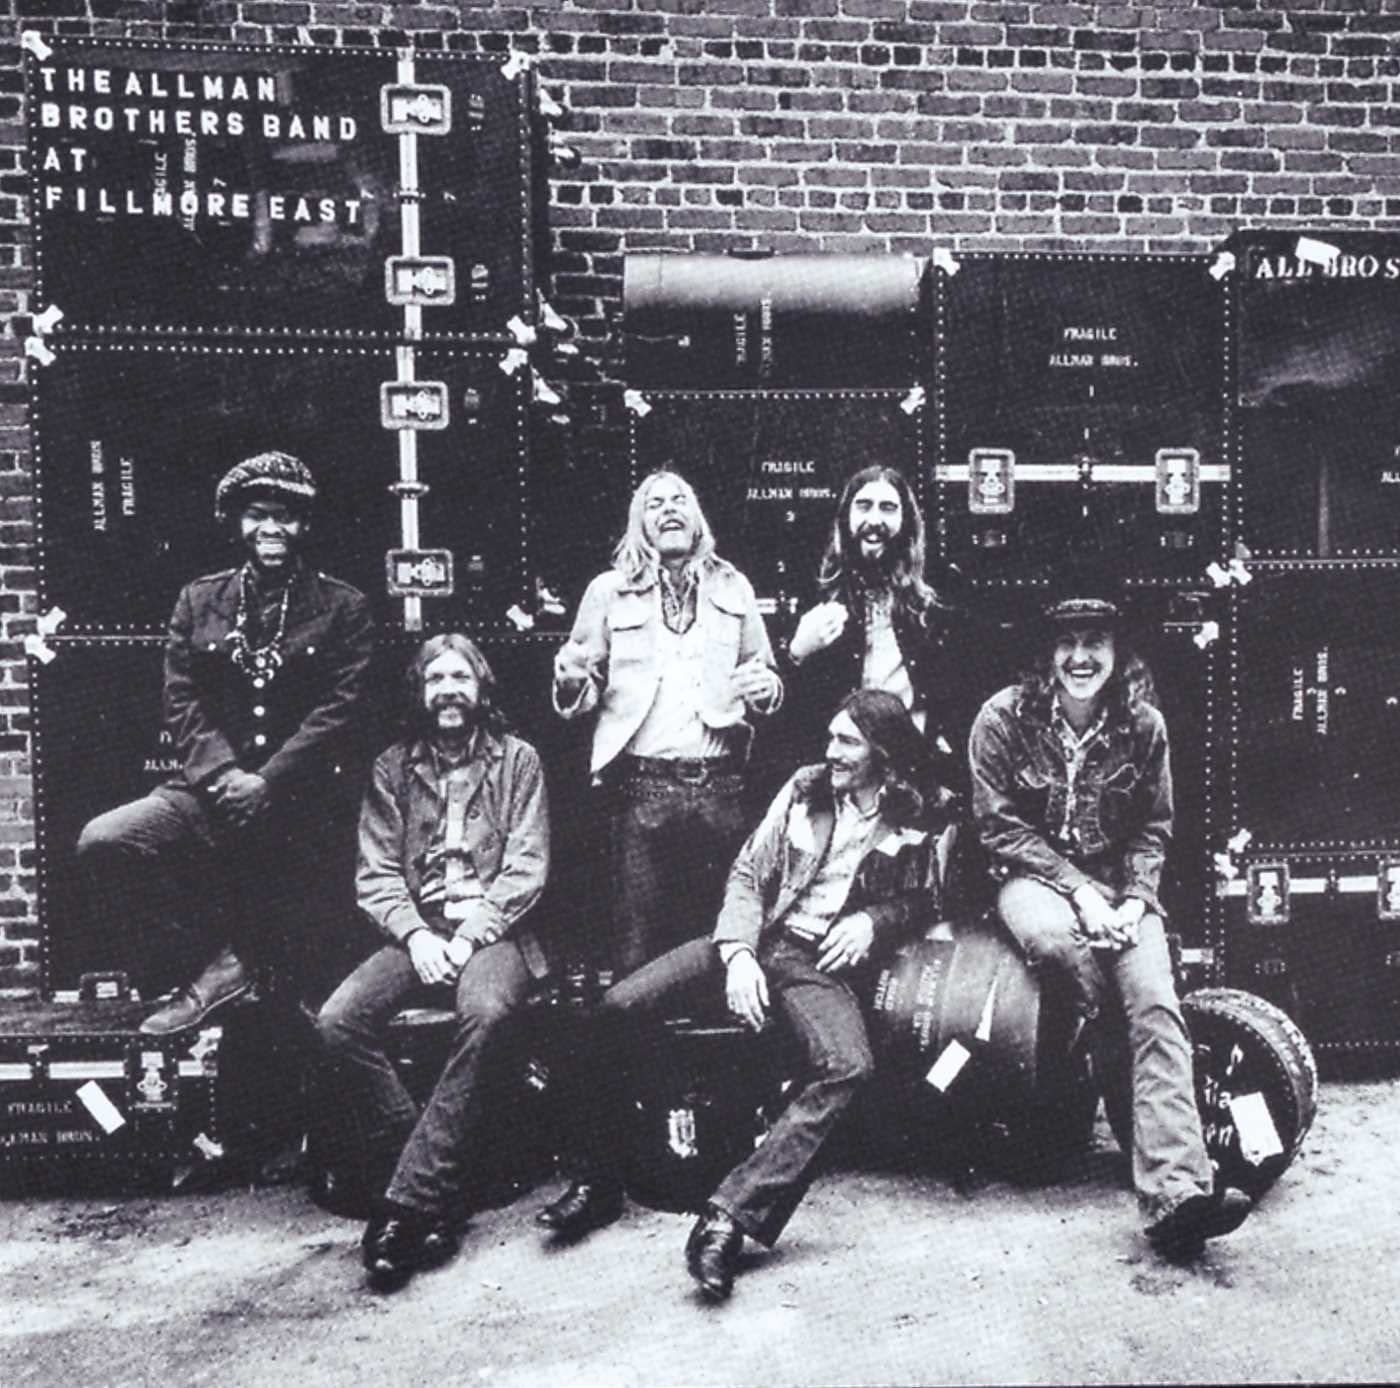 Fillmore East Allman Brothers Amazonit Musica